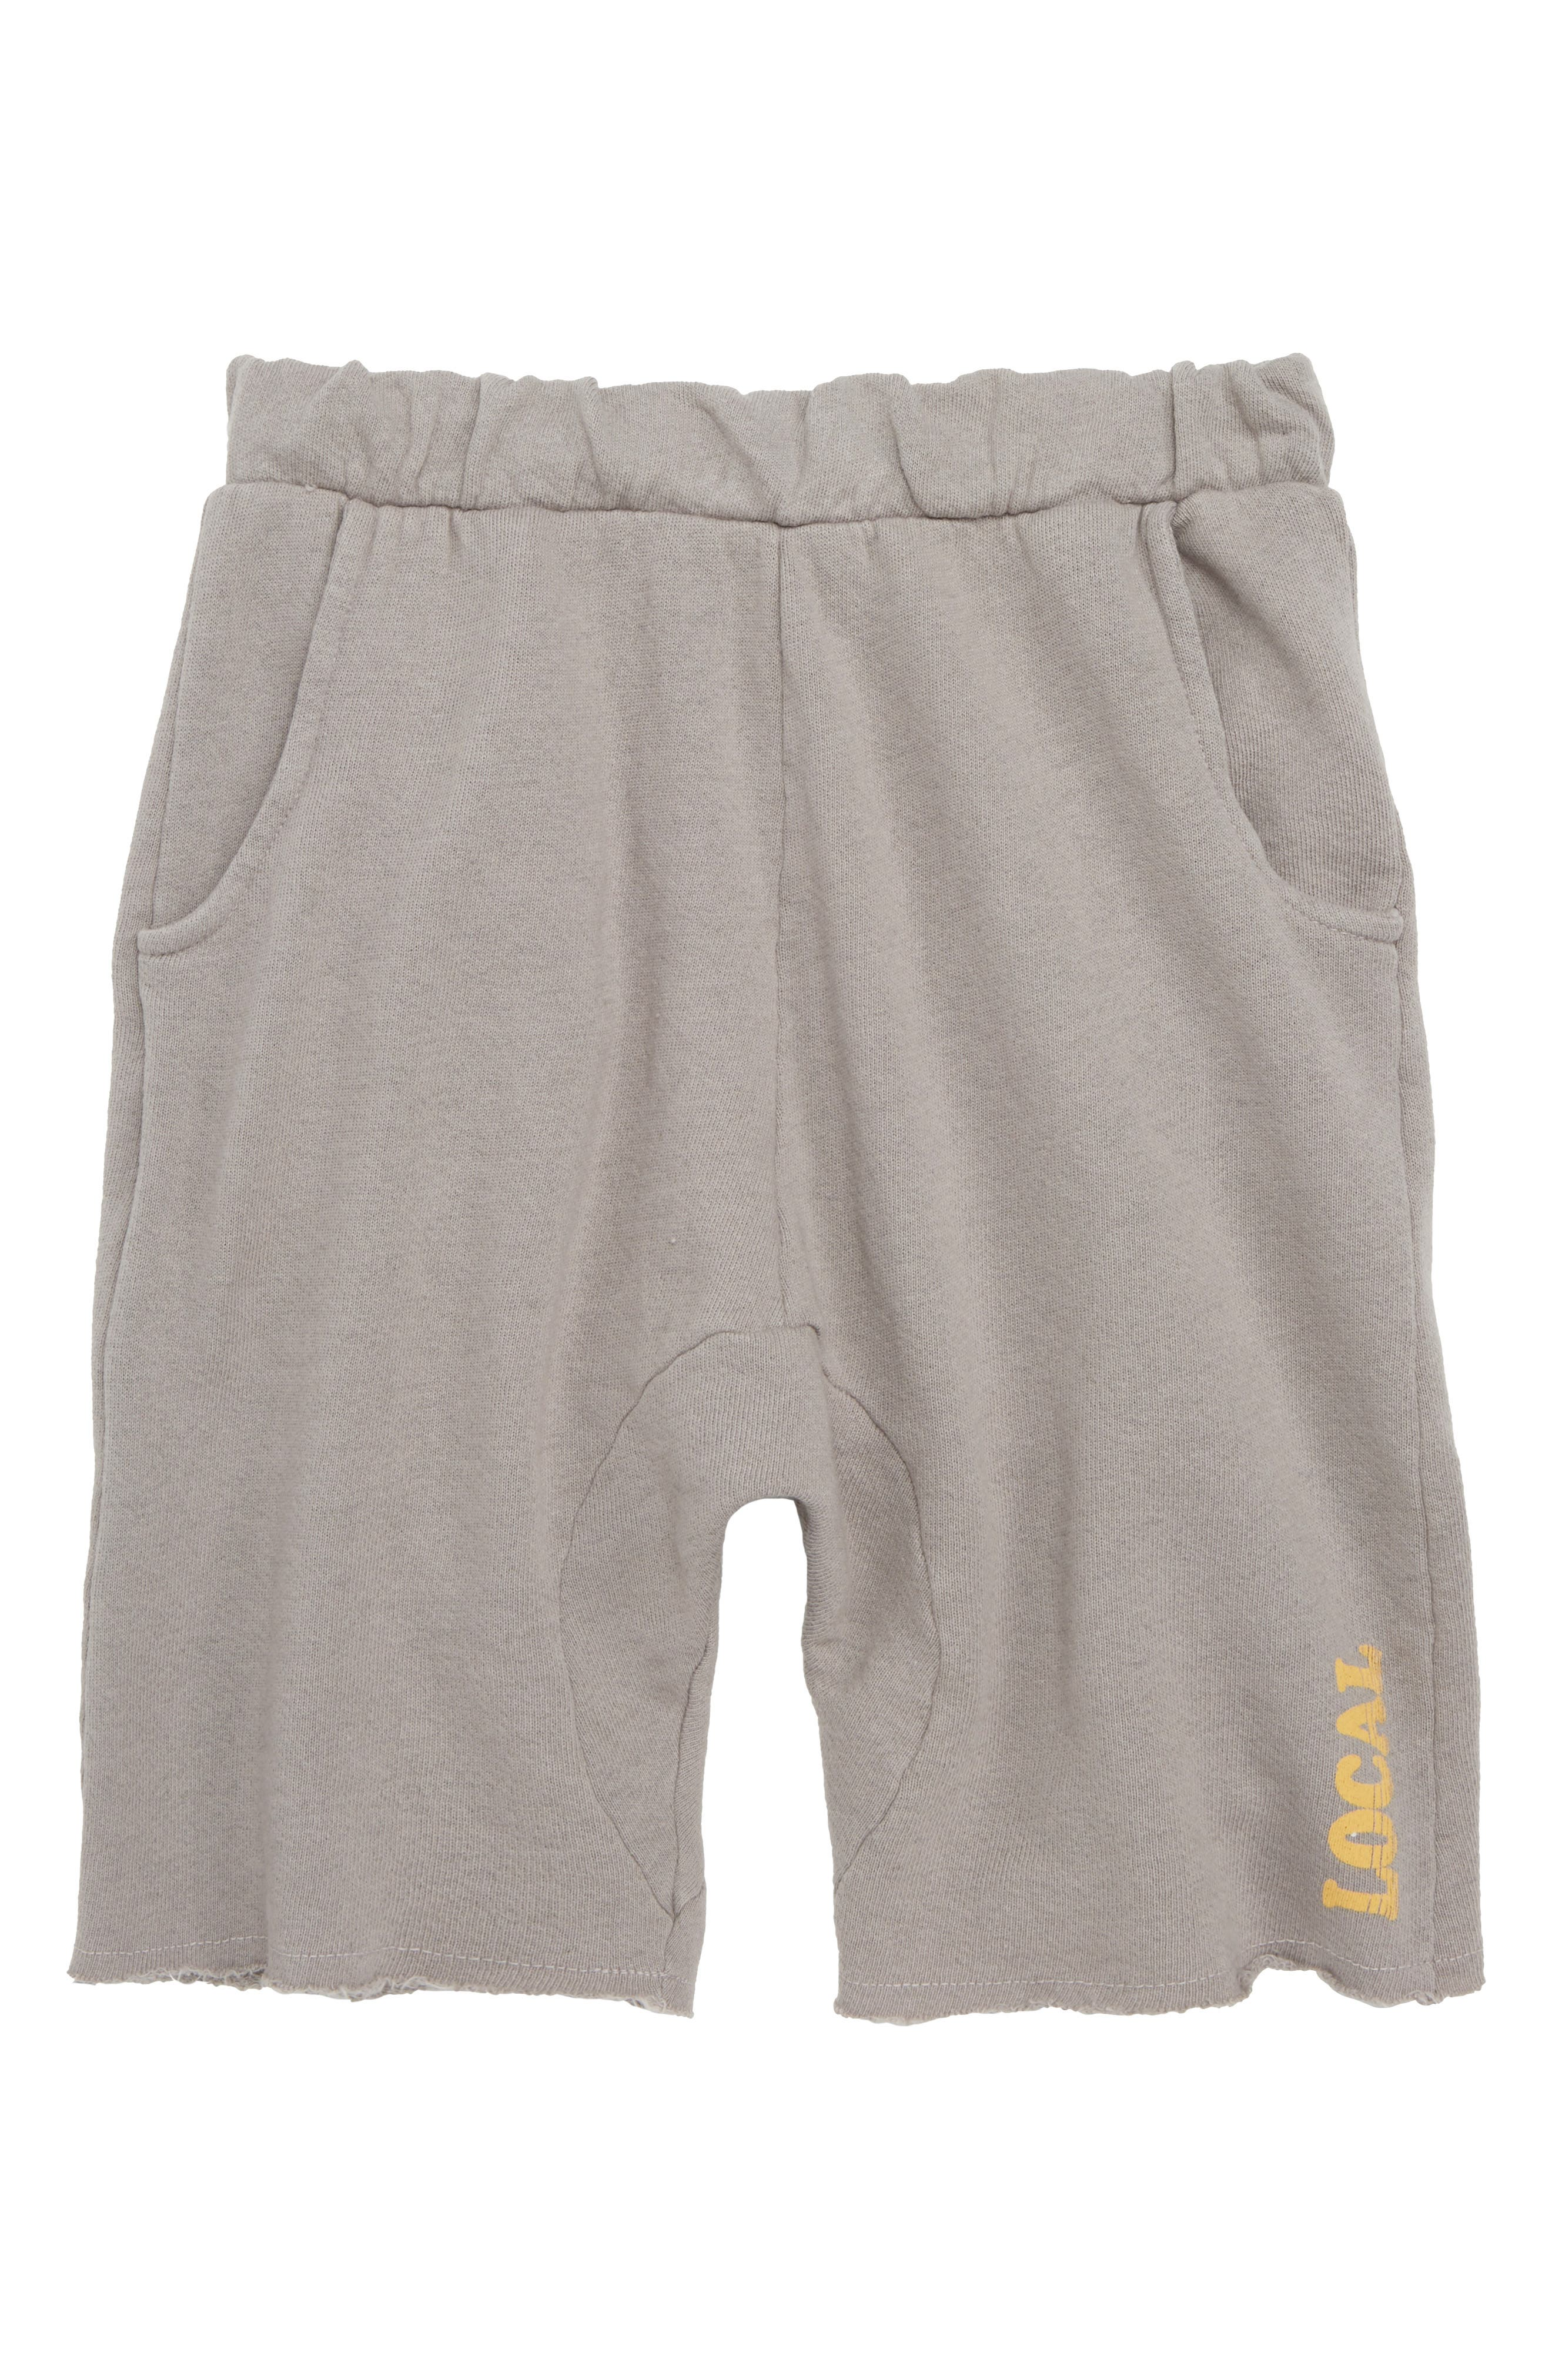 Cozy Time Shorts,                             Main thumbnail 1, color,                             Gray